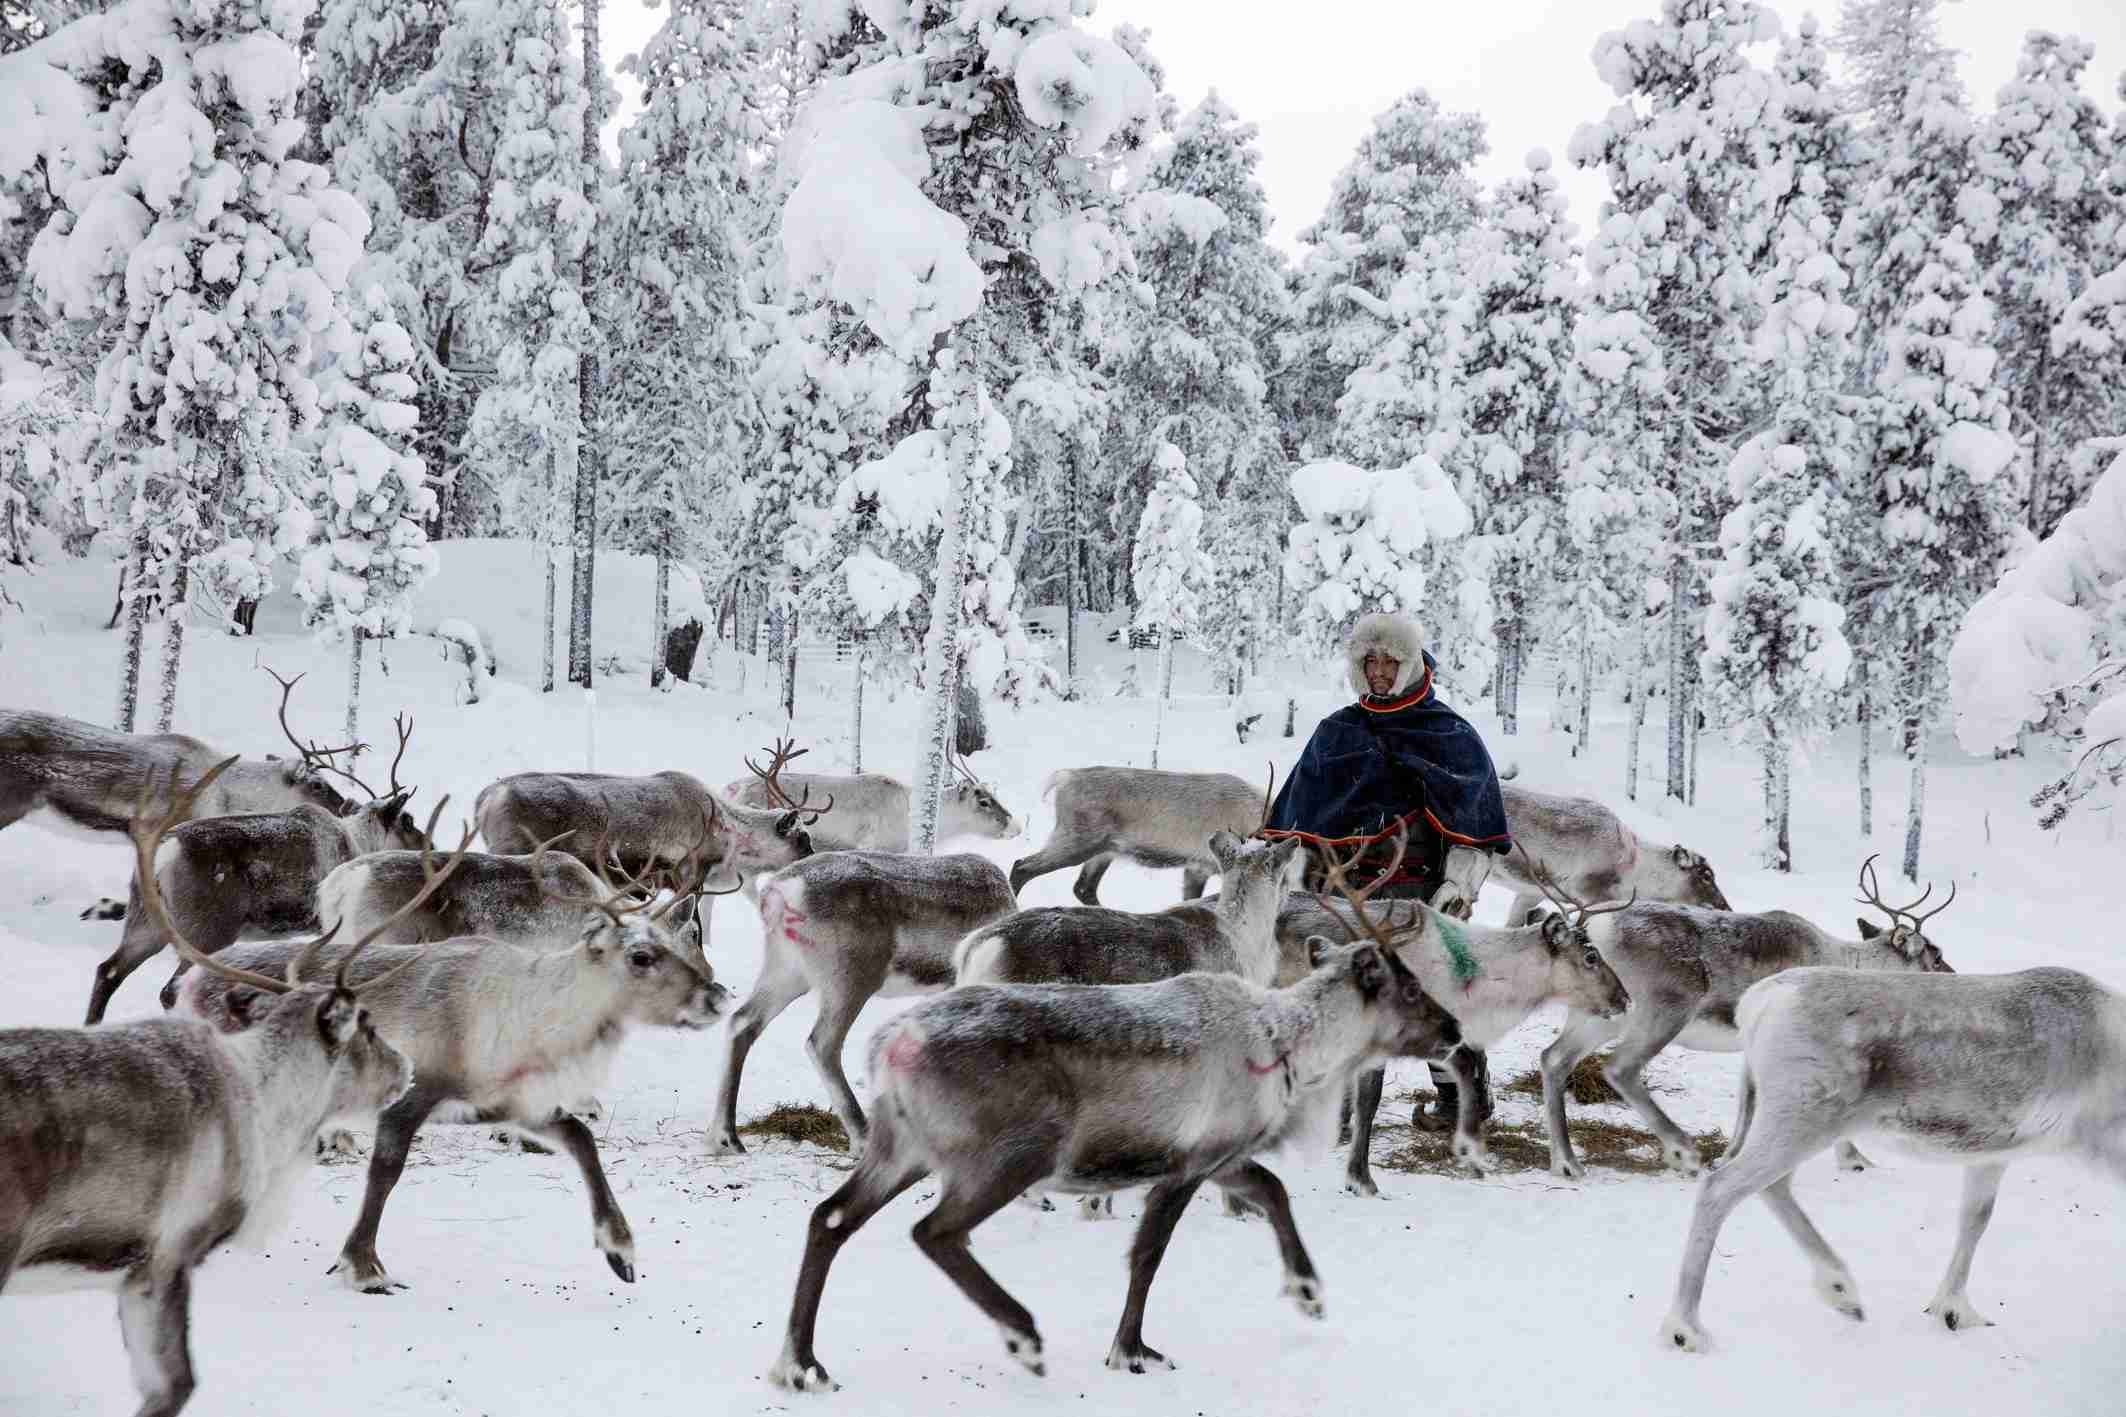 The Sami of Finland: Surviving the Extreme North